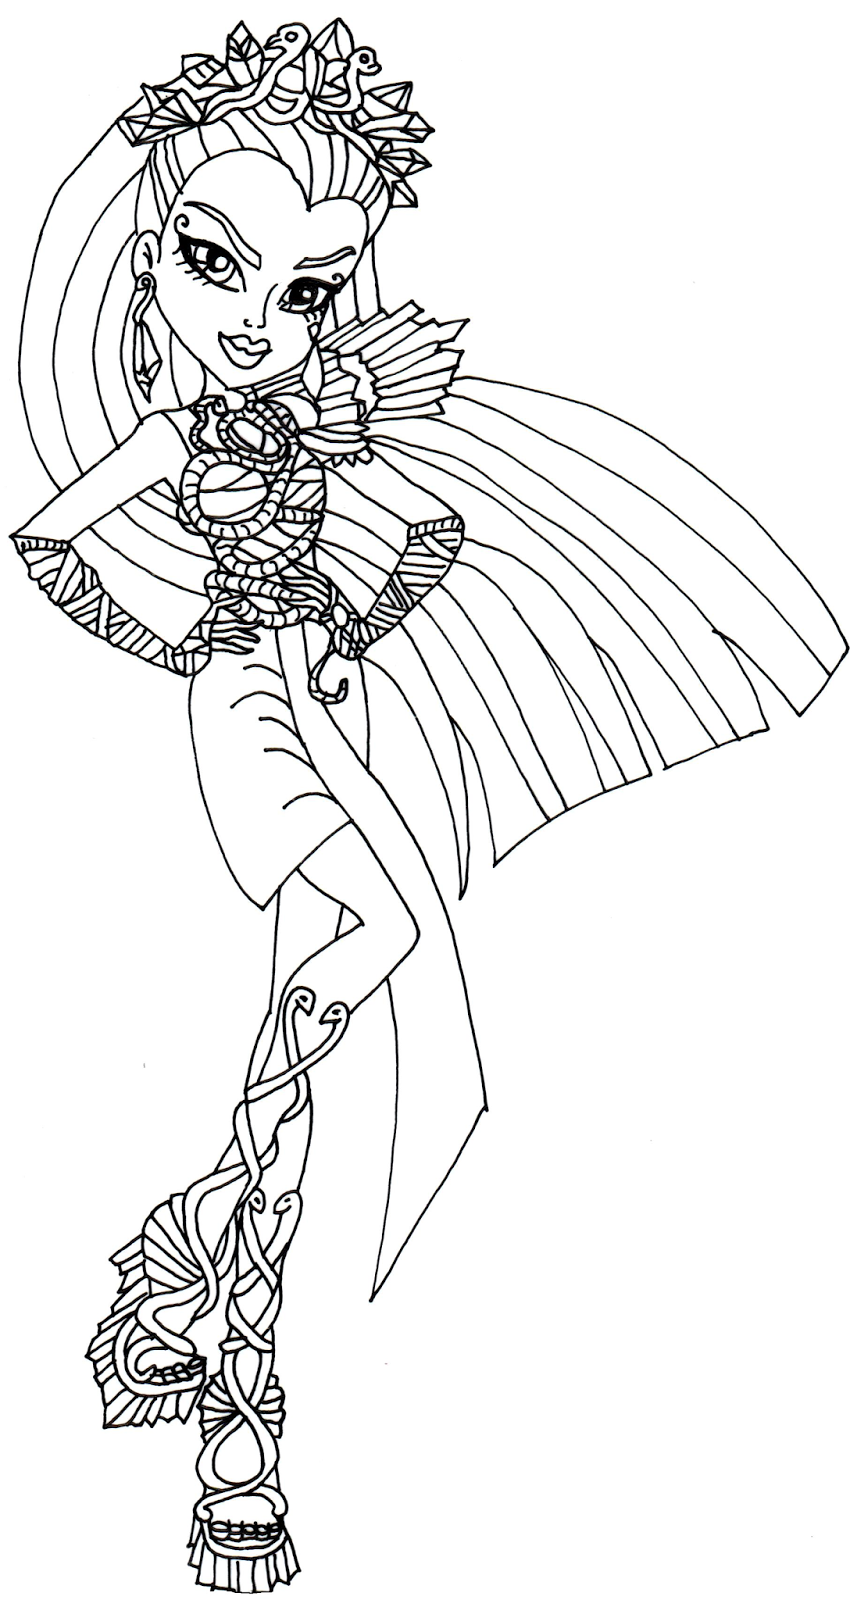 Free printable monster high coloring pages nefera de nile for Monster high color pages free